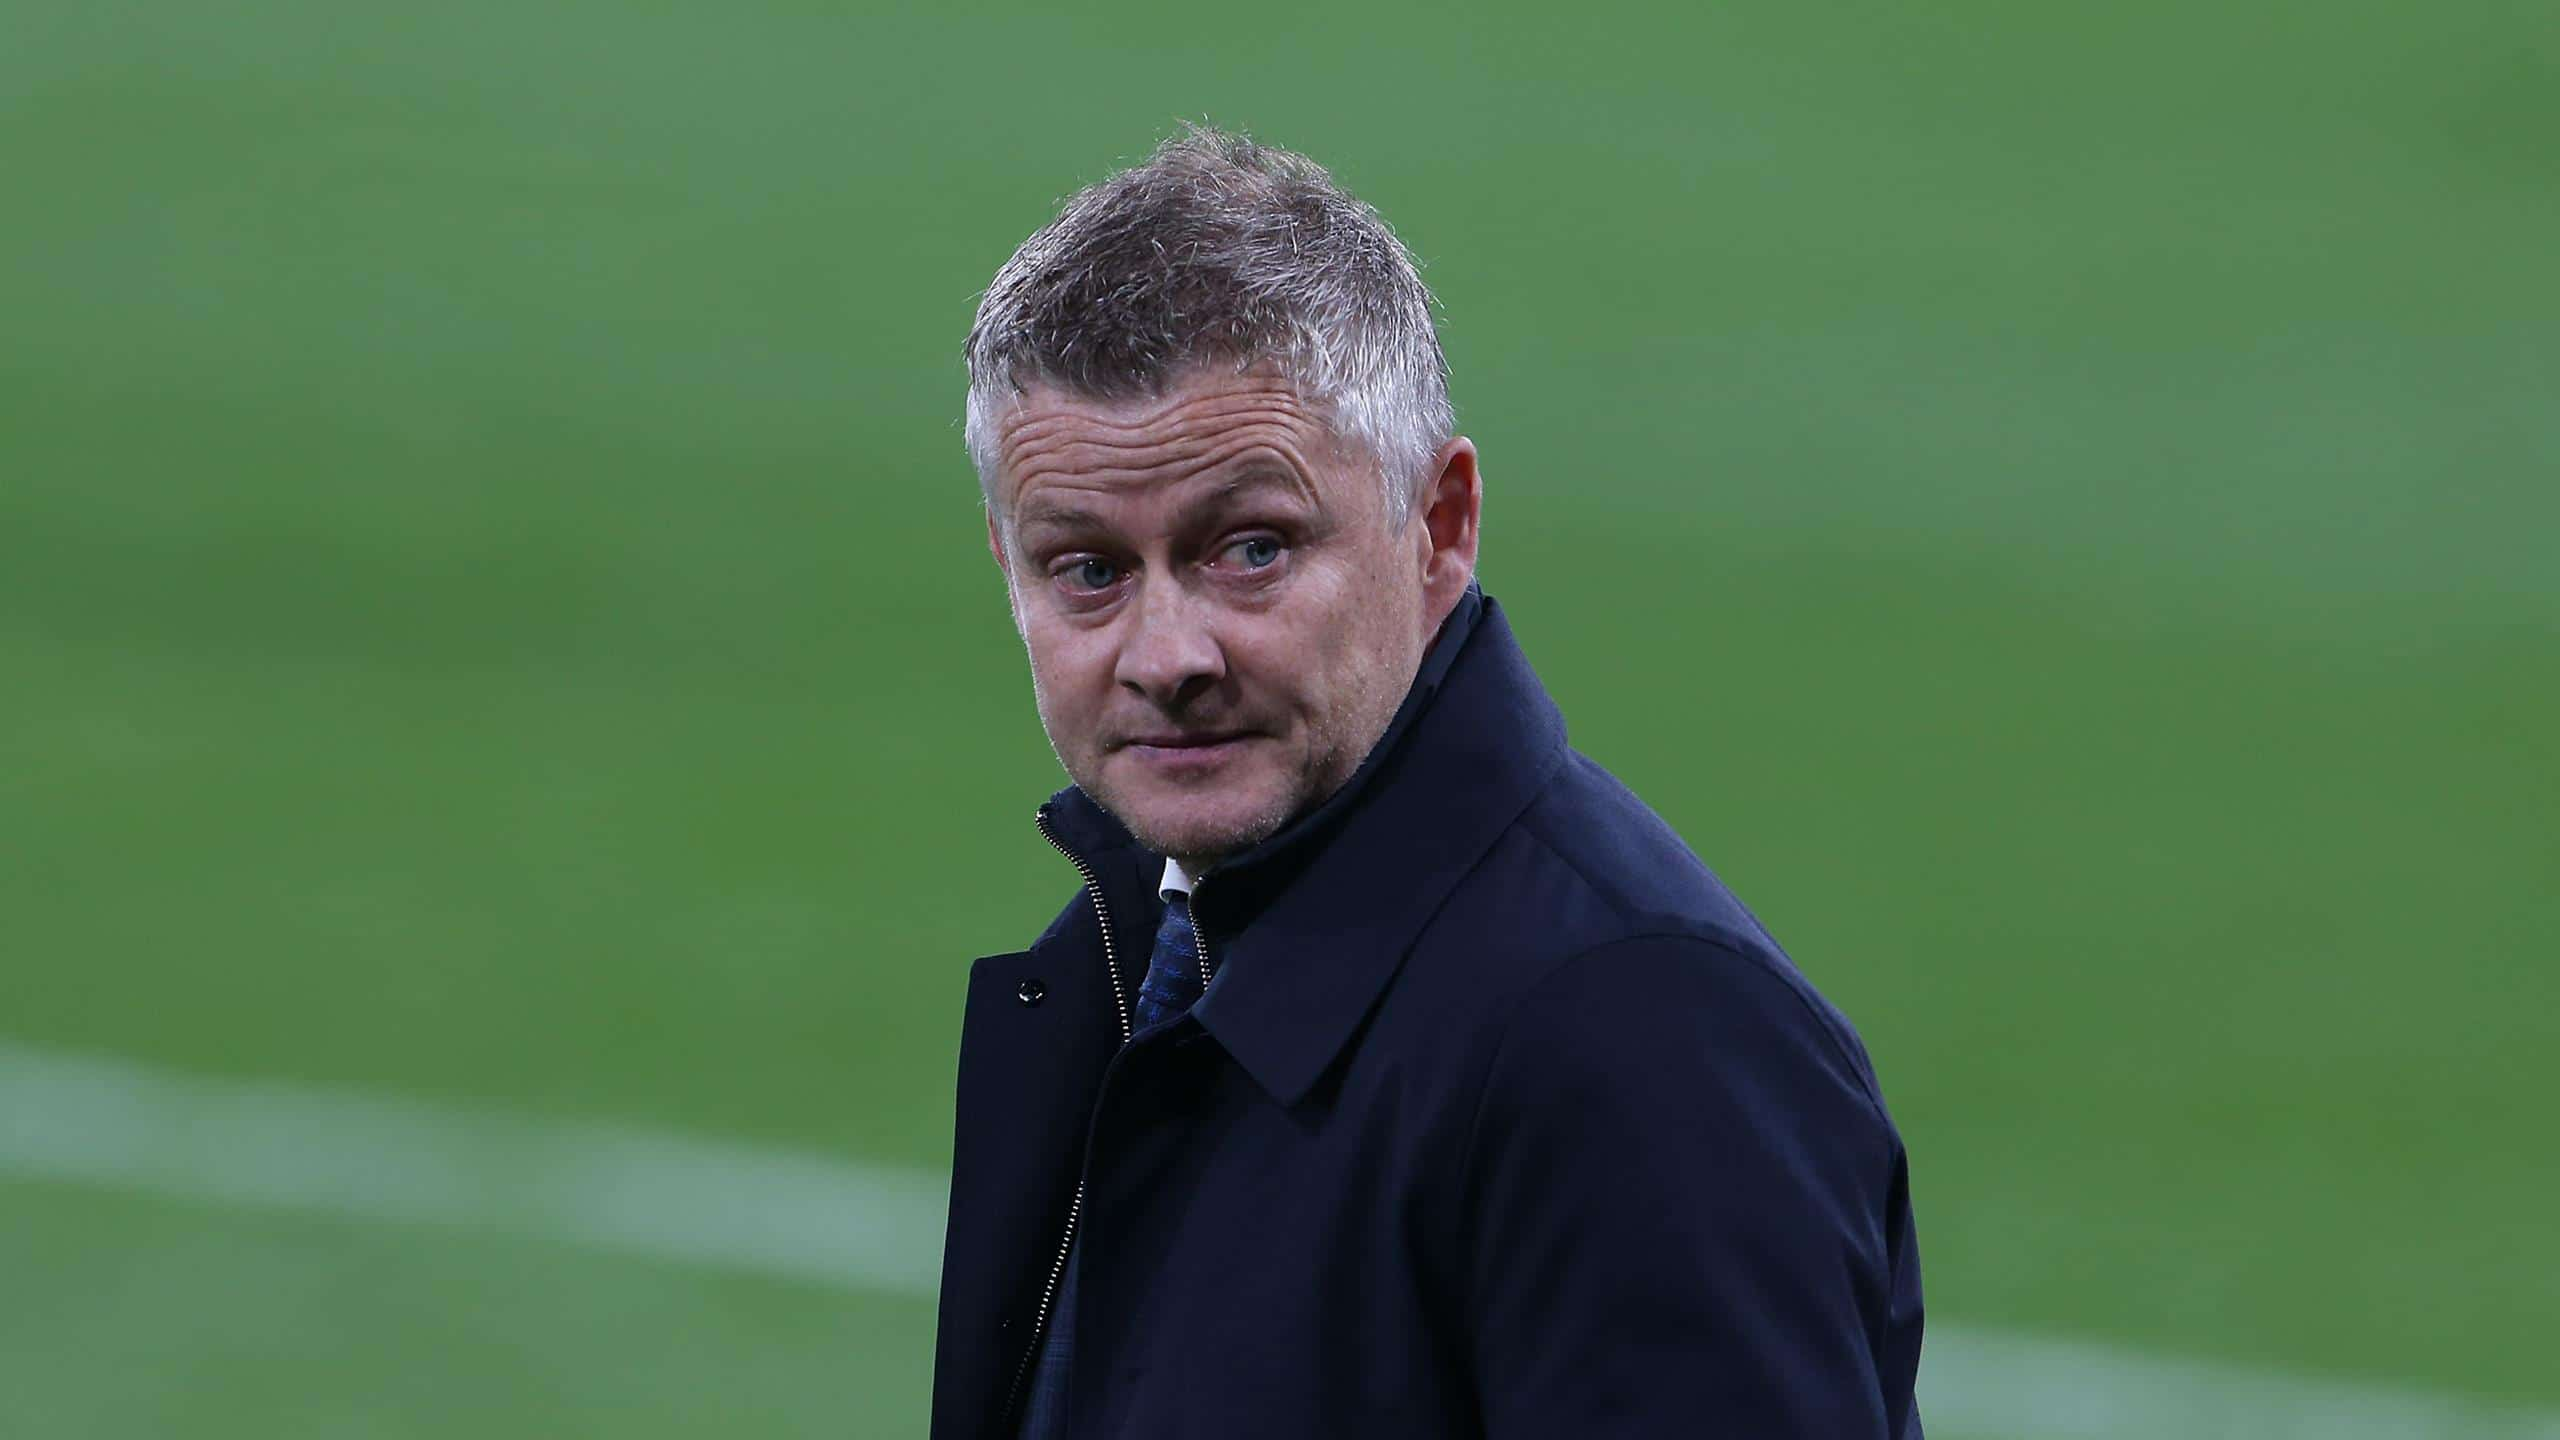 solskjaers-preparation-for-europa-closing-develop-into-once-low.jpg